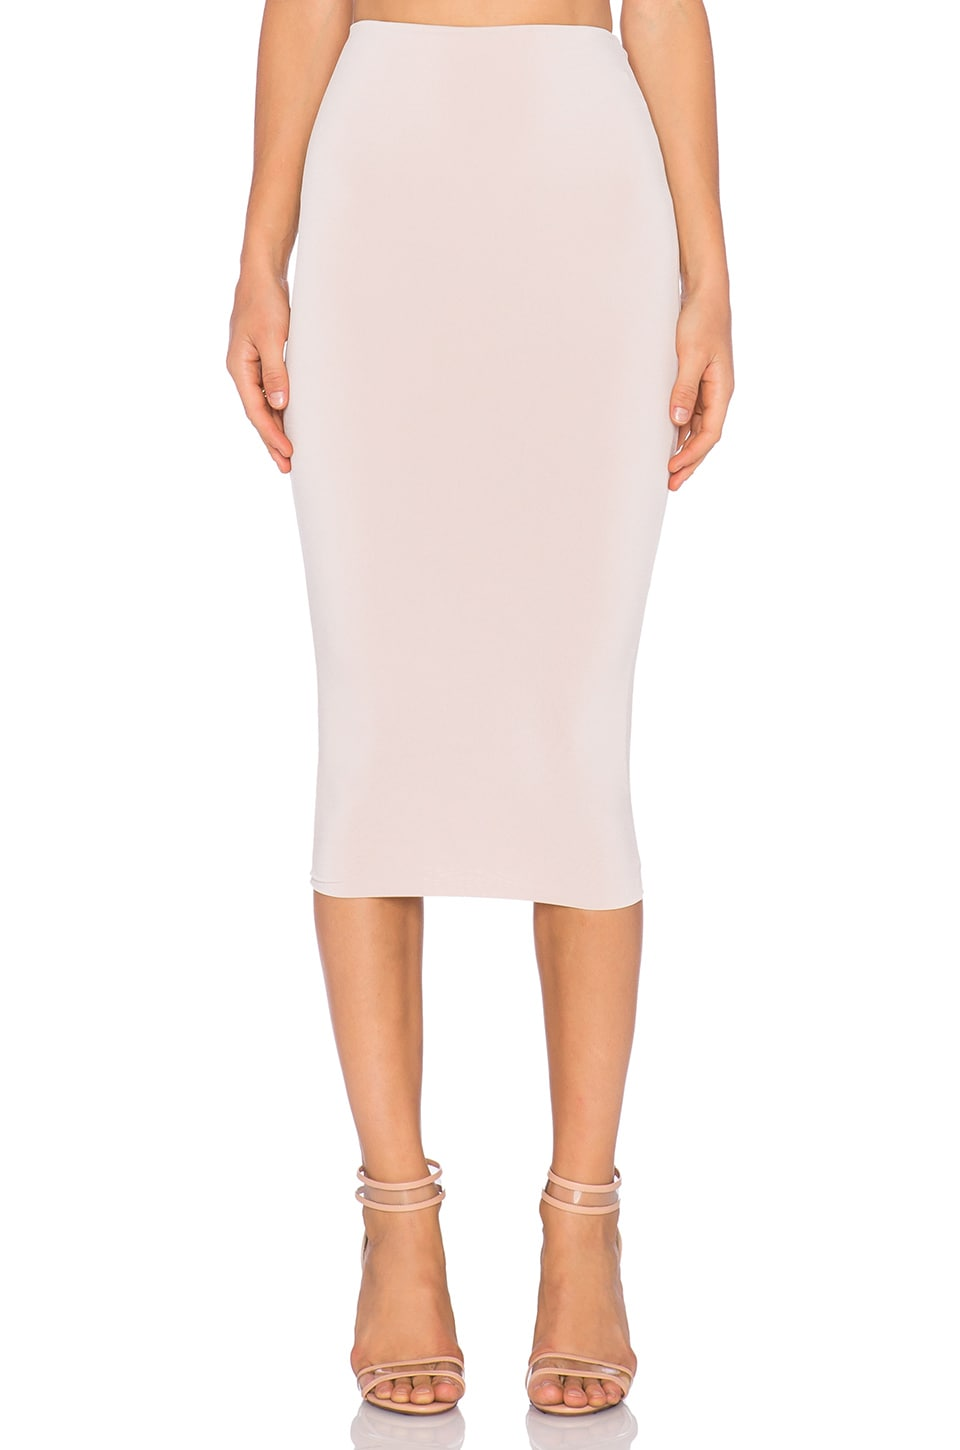 Nookie Dolce Vita Pencil Skirt in Nude